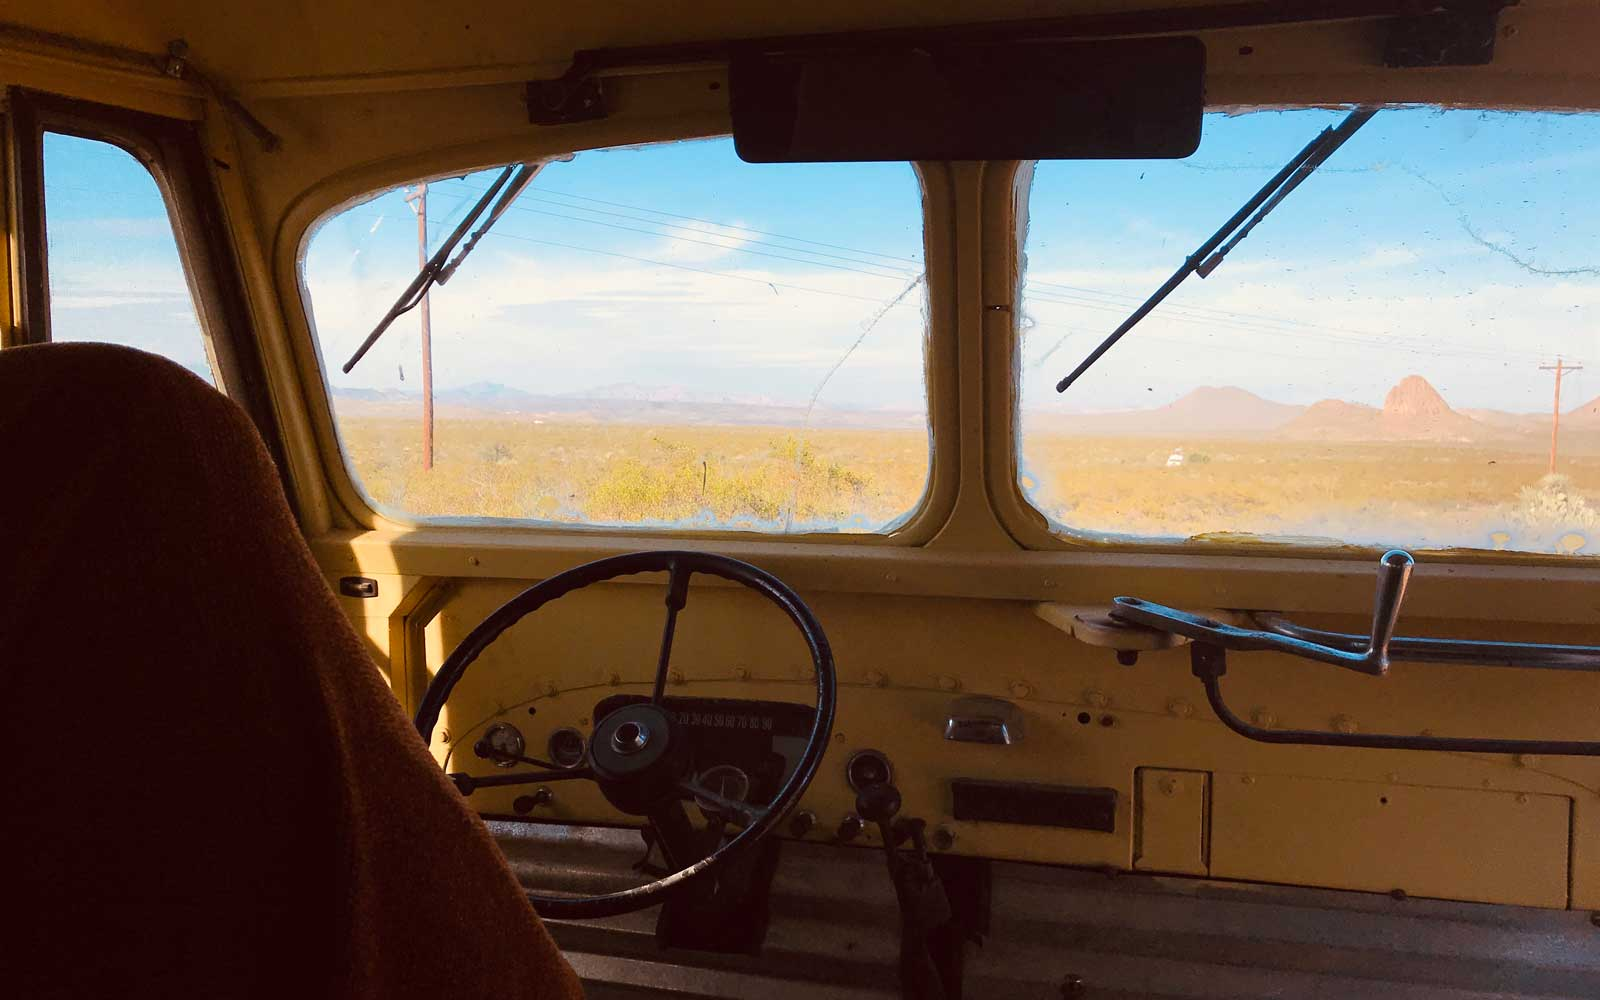 This Retro School Bus Is an Airbnb With Incredible Stargazing